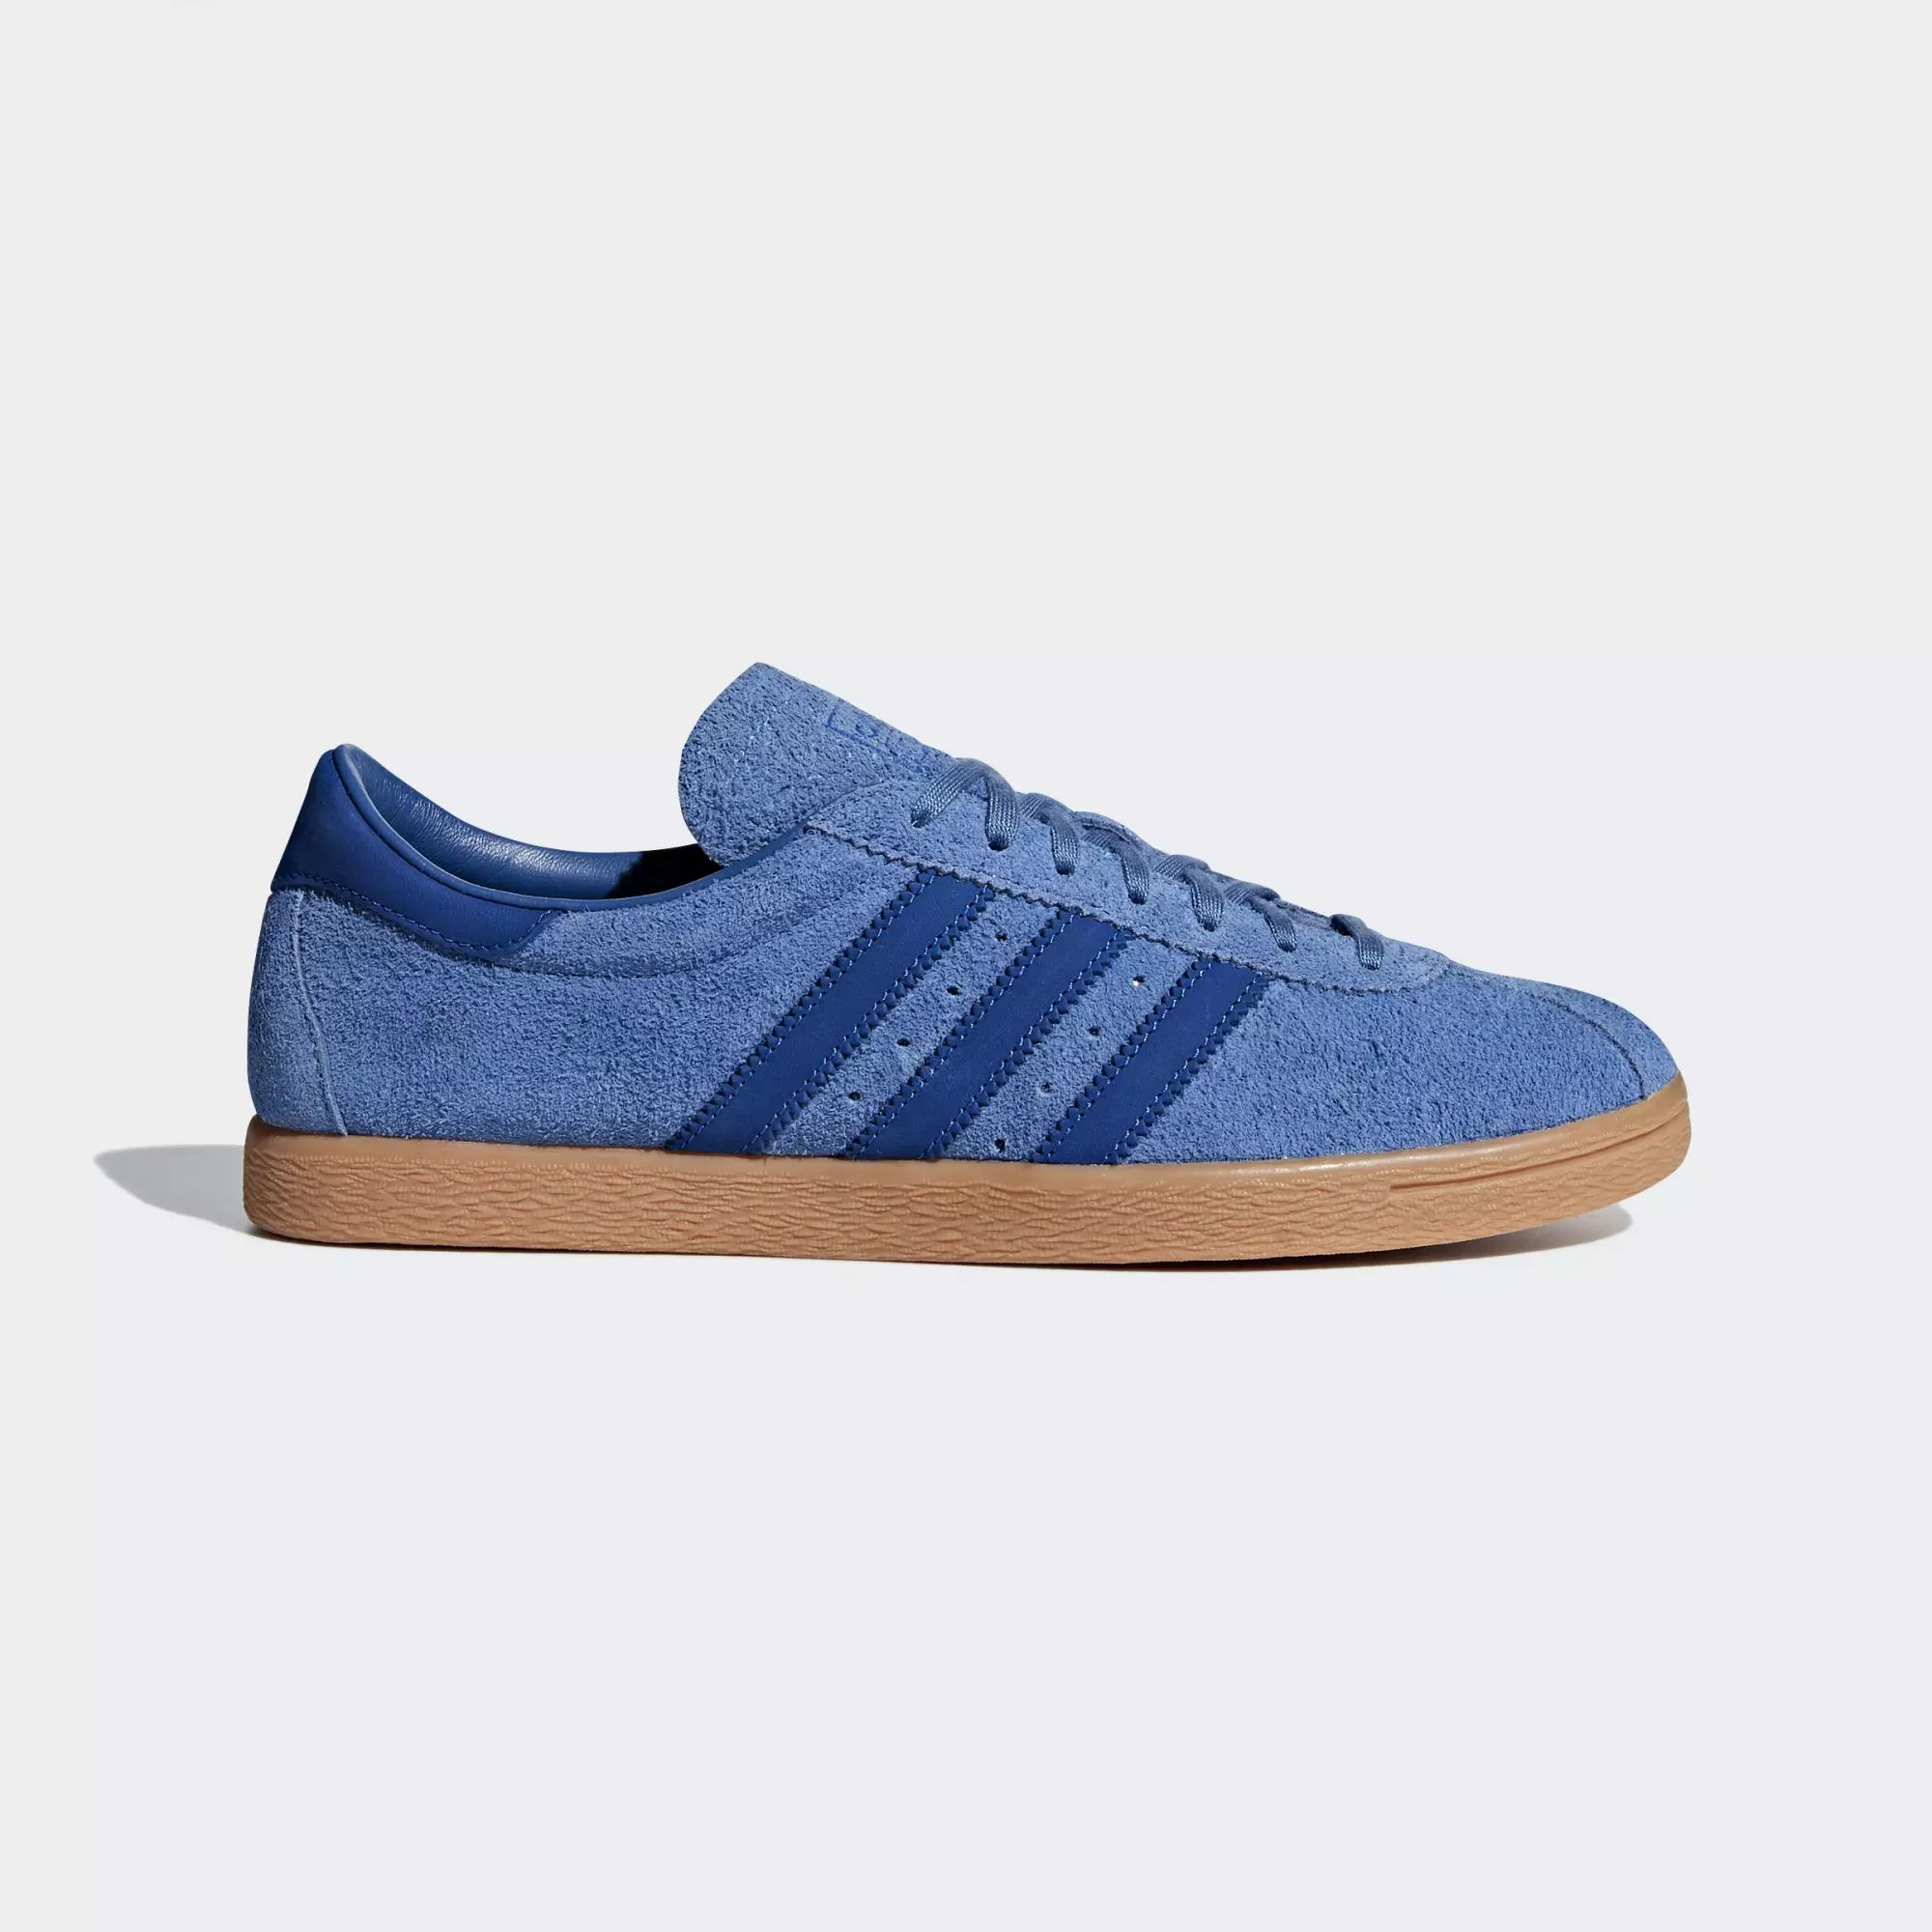 Adidas Tobacco Shoes - Trace Royal / Collegiate Royal / Gum